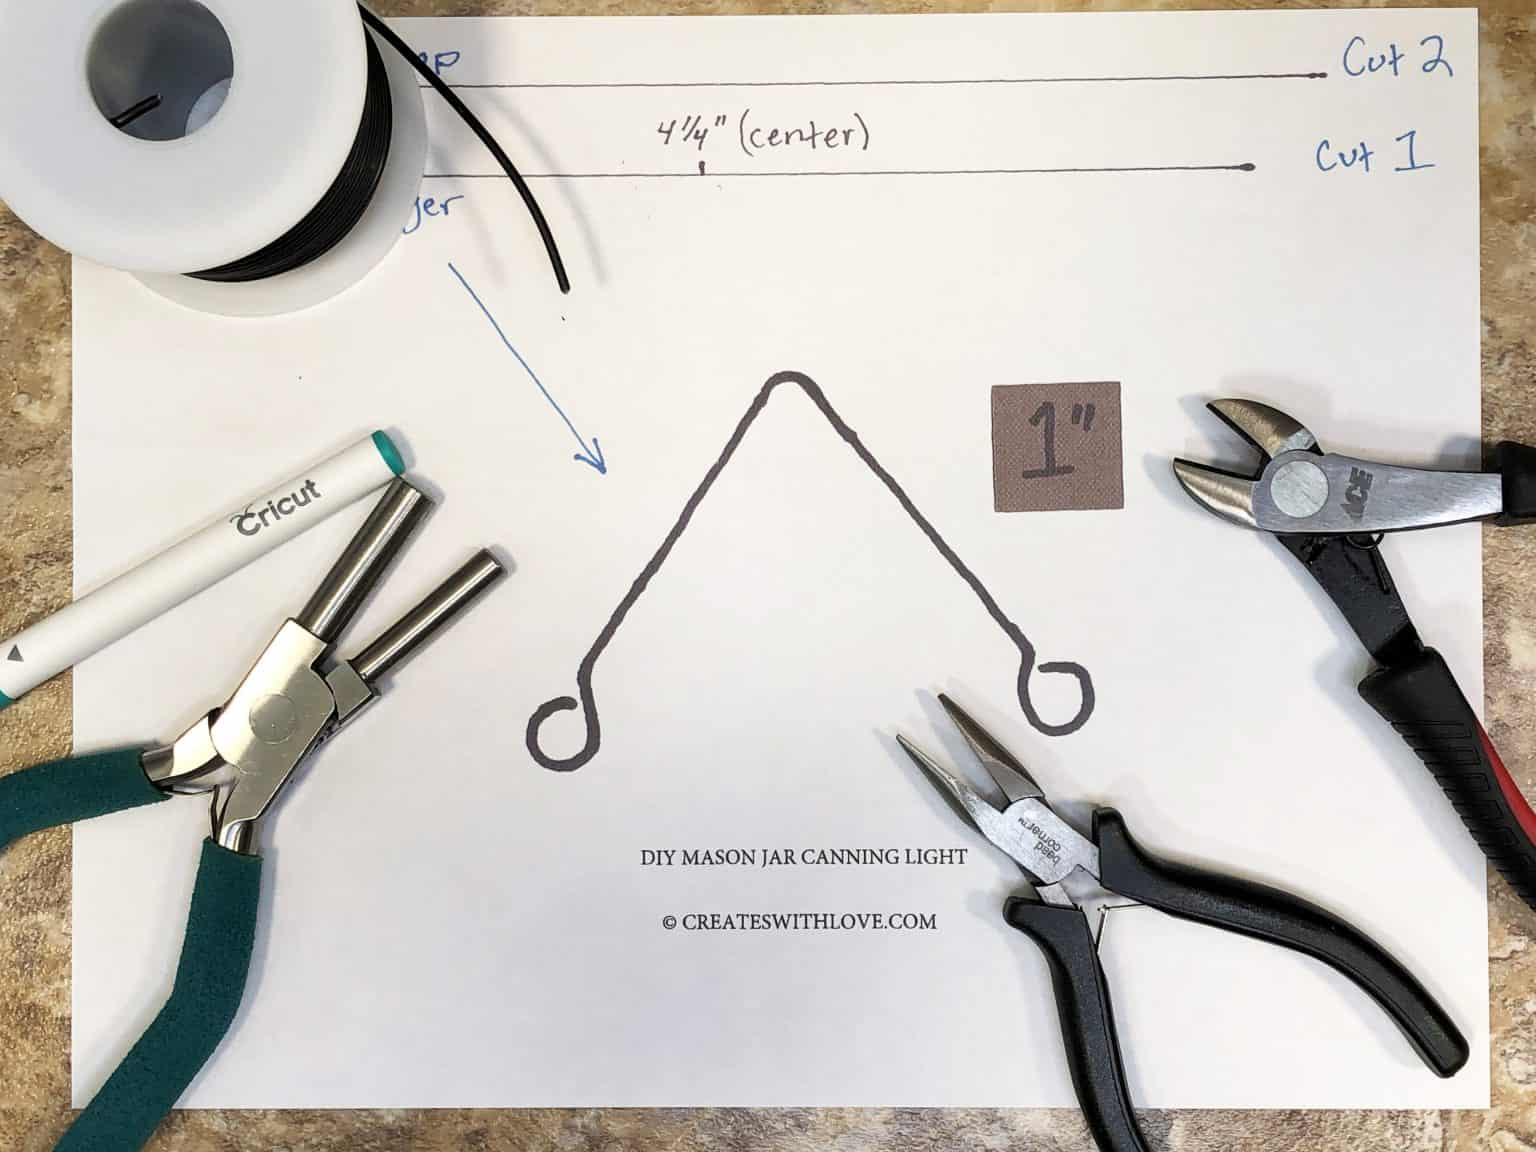 DIY Mason Jar Canning Light Free Wire Sizing Template and various tools used to cut and form wires.